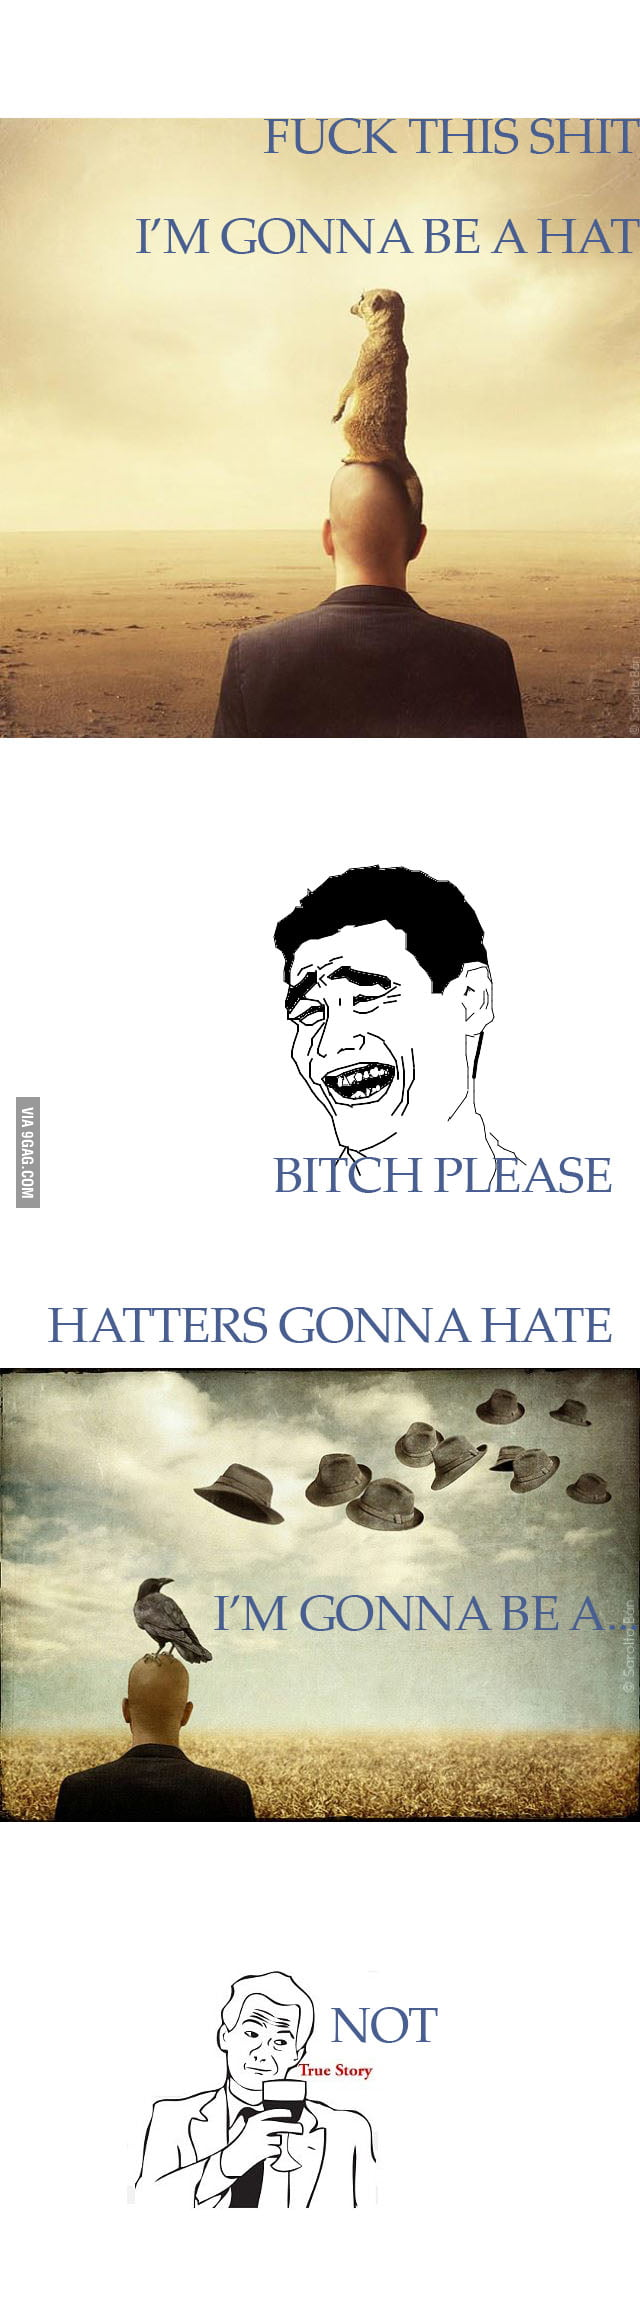 HATTERS GONNA HATE